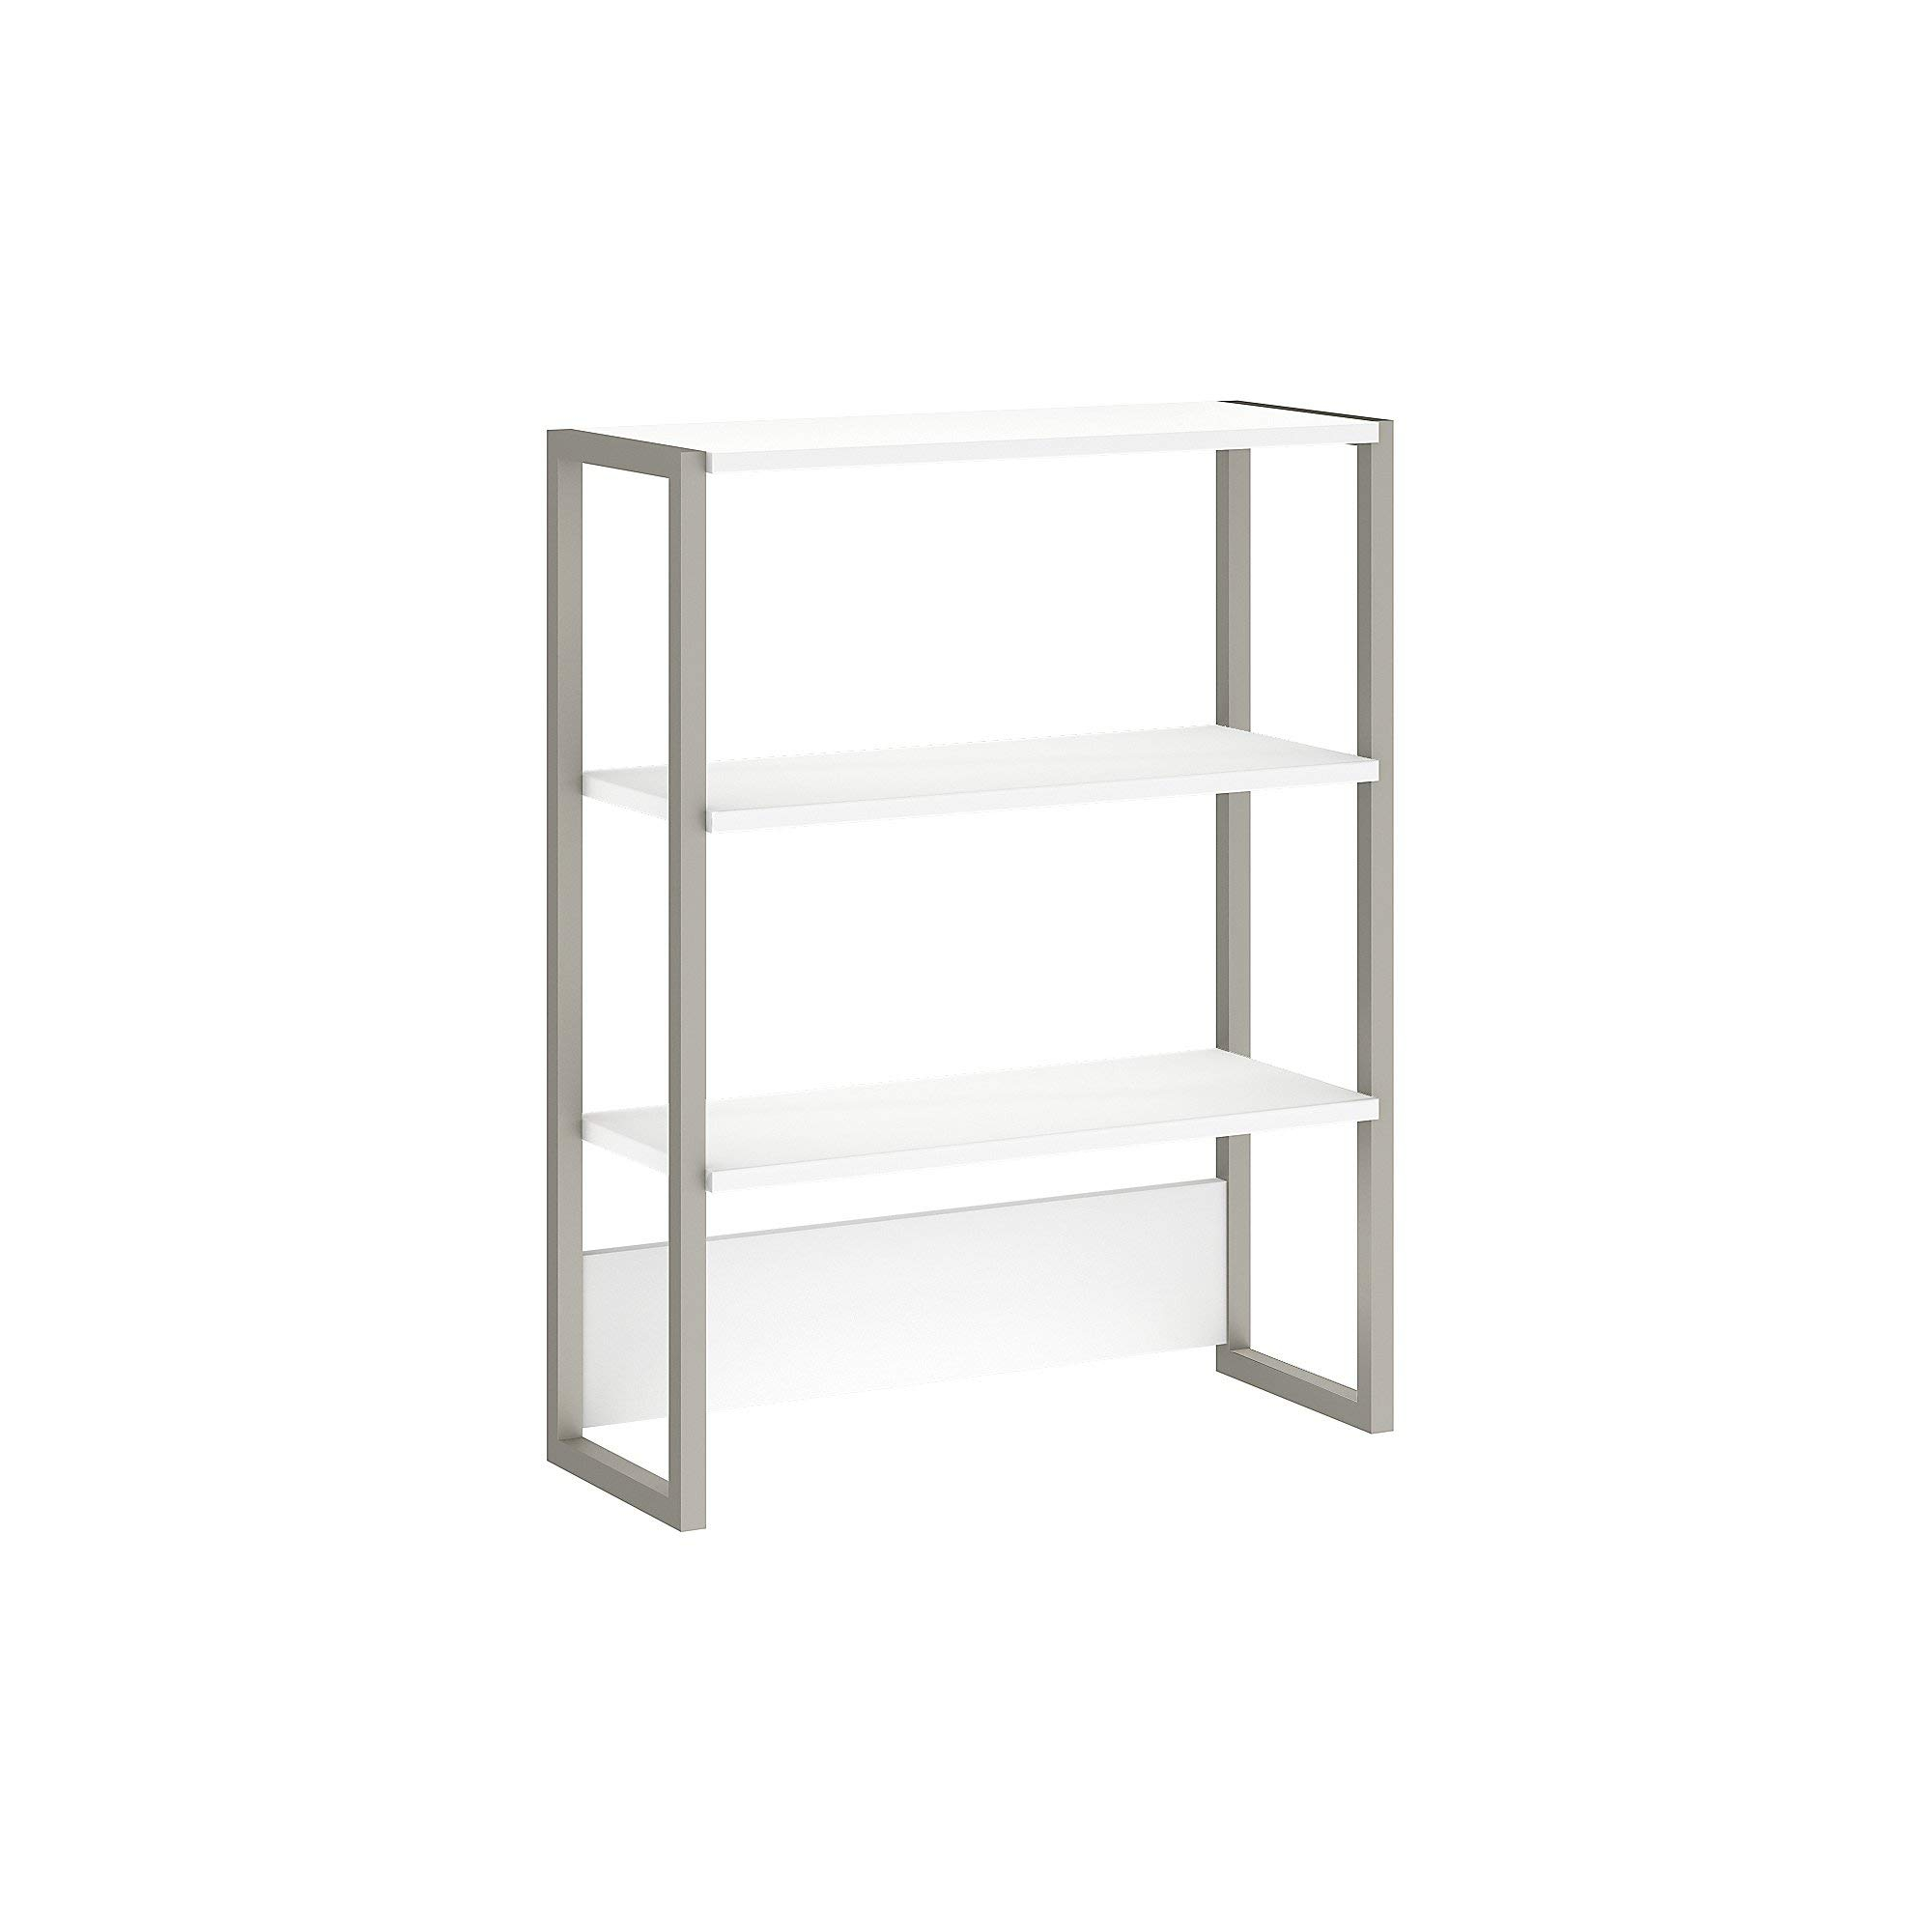 Office by kathy ireland Method Bookcase Hutch in White by Kathy Ireland Office